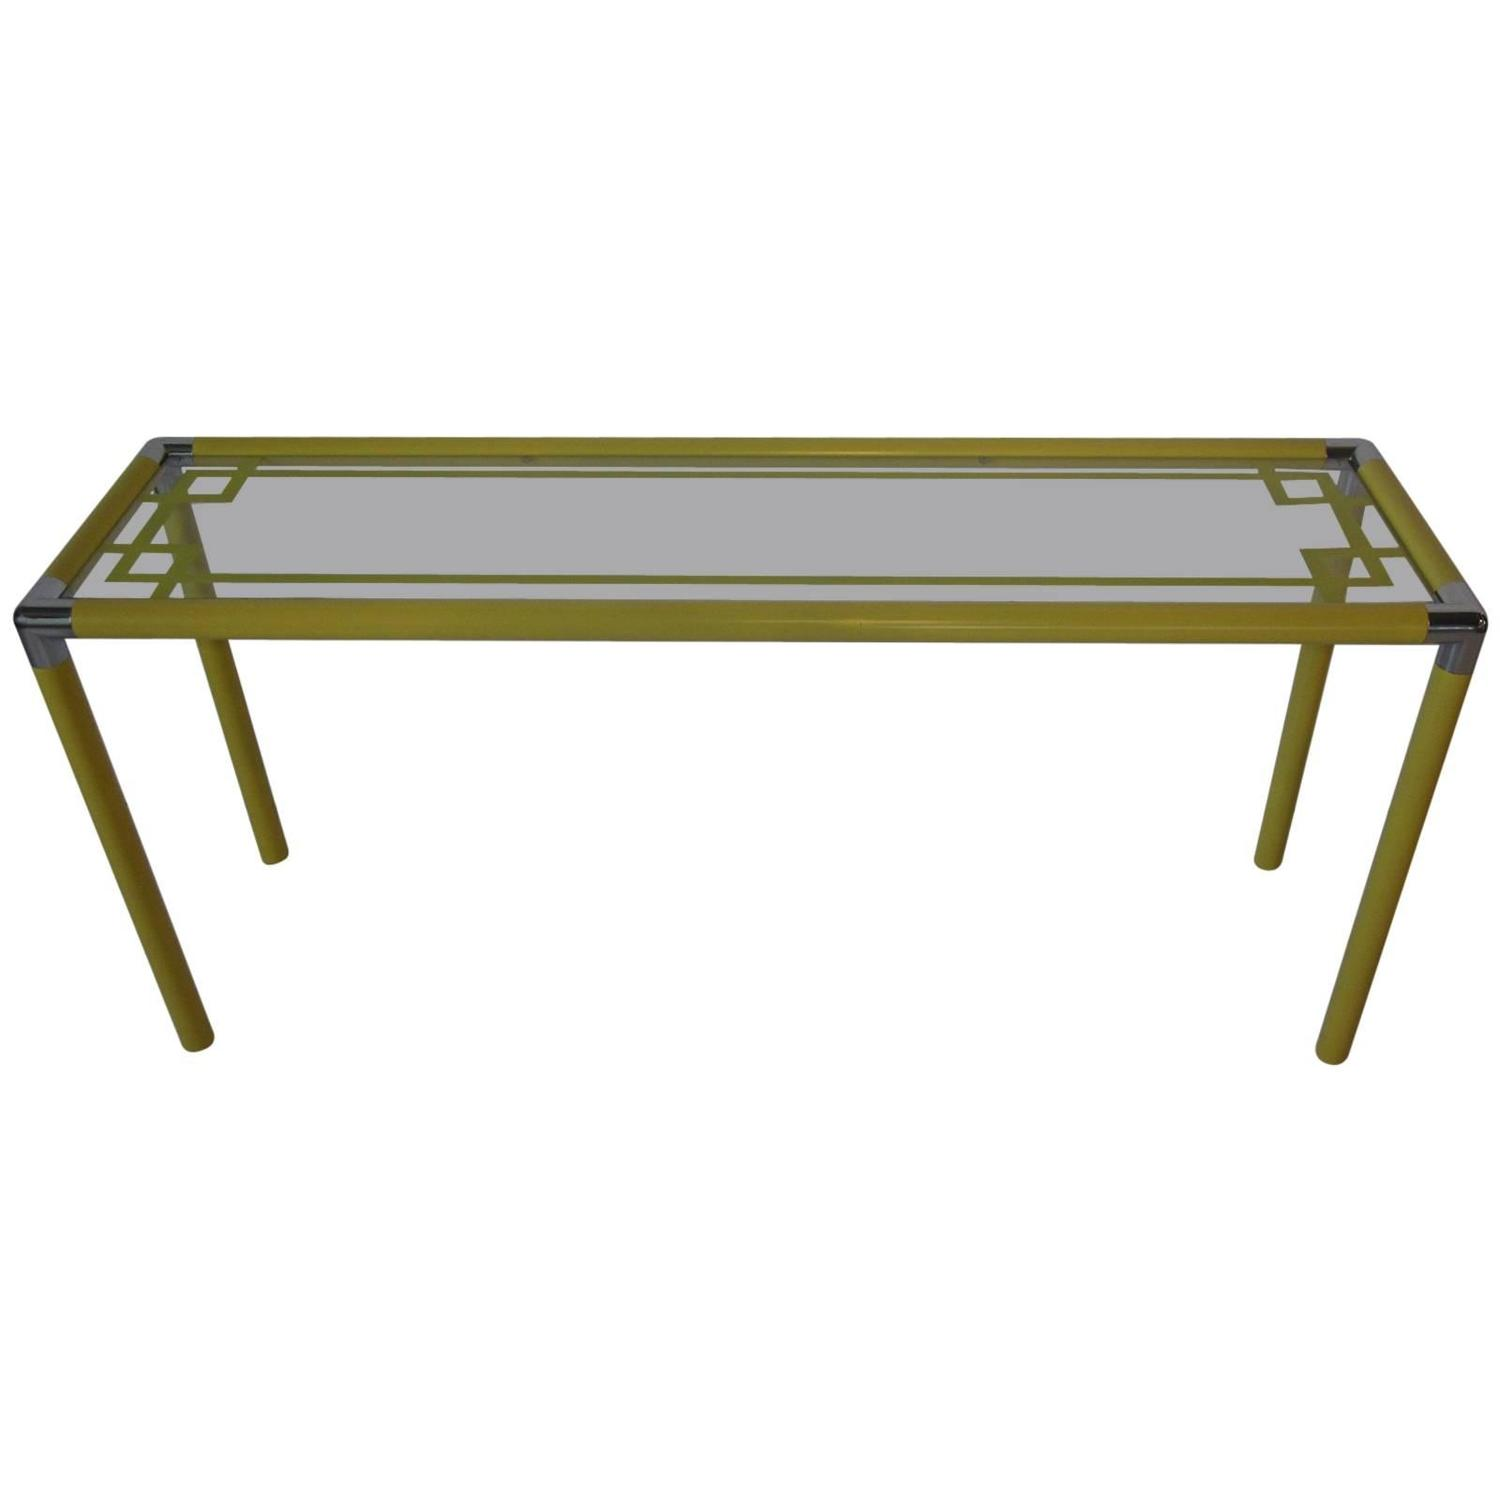 1970s yellow metal and glass console table at 1stdibs for Metal and glass console tables